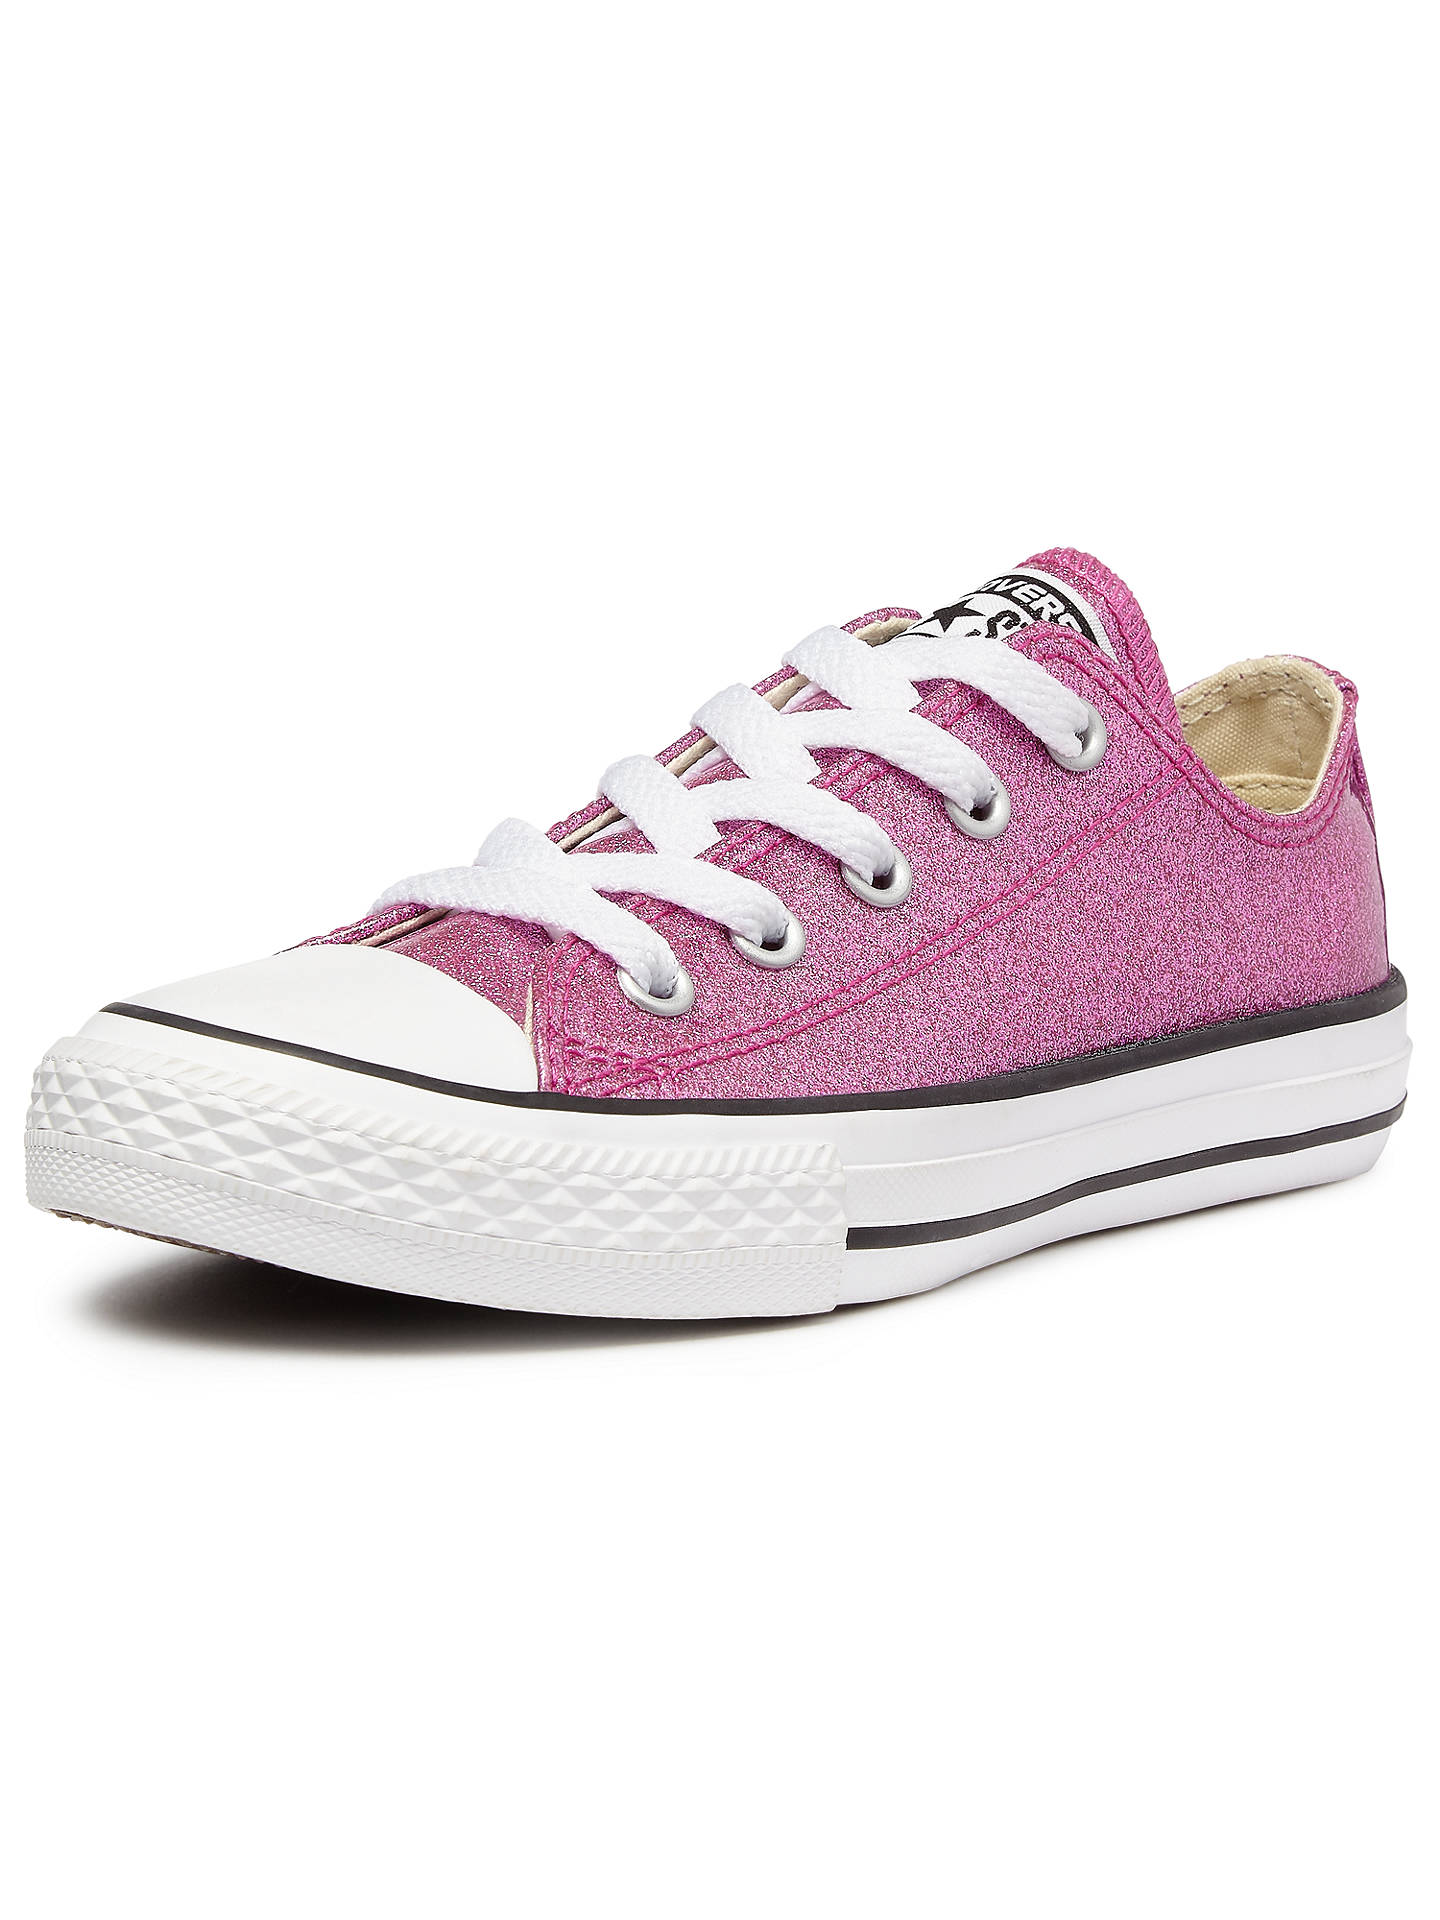 bfd6c84a527f ... Buy Converse Chuck Taylor All Star Ox Trainers